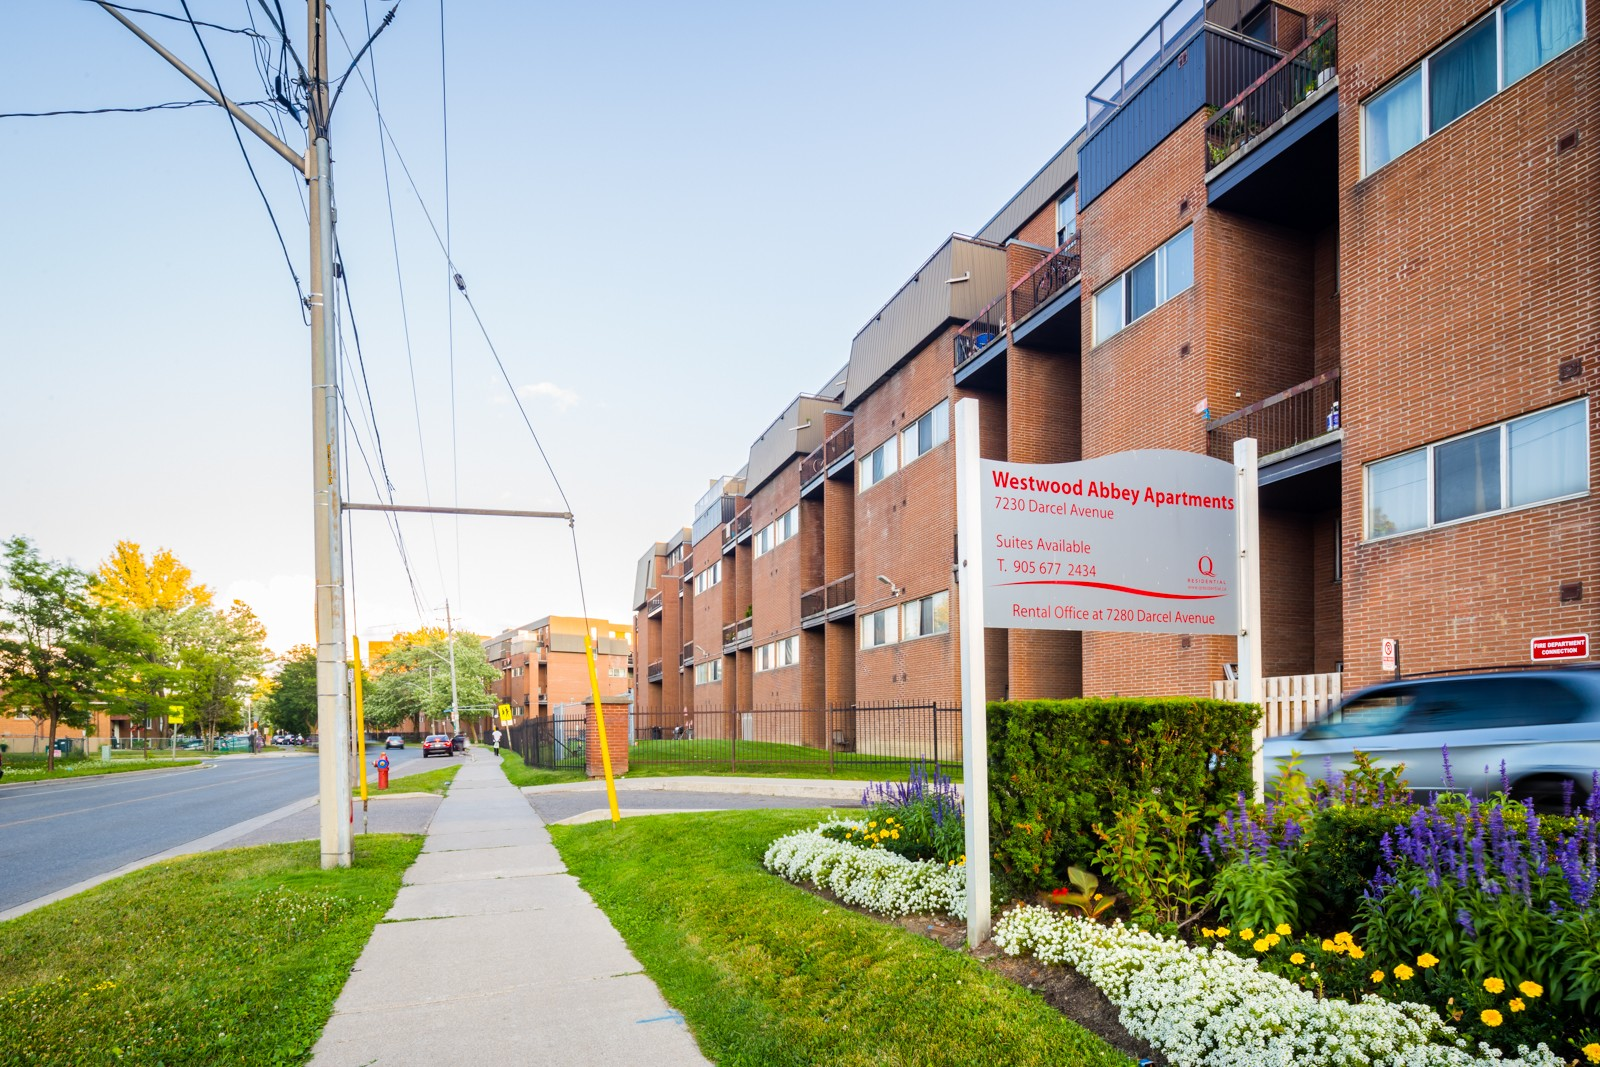 7230 Darcel Townhouses at 7230 Darcel Ave, Mississauga 1